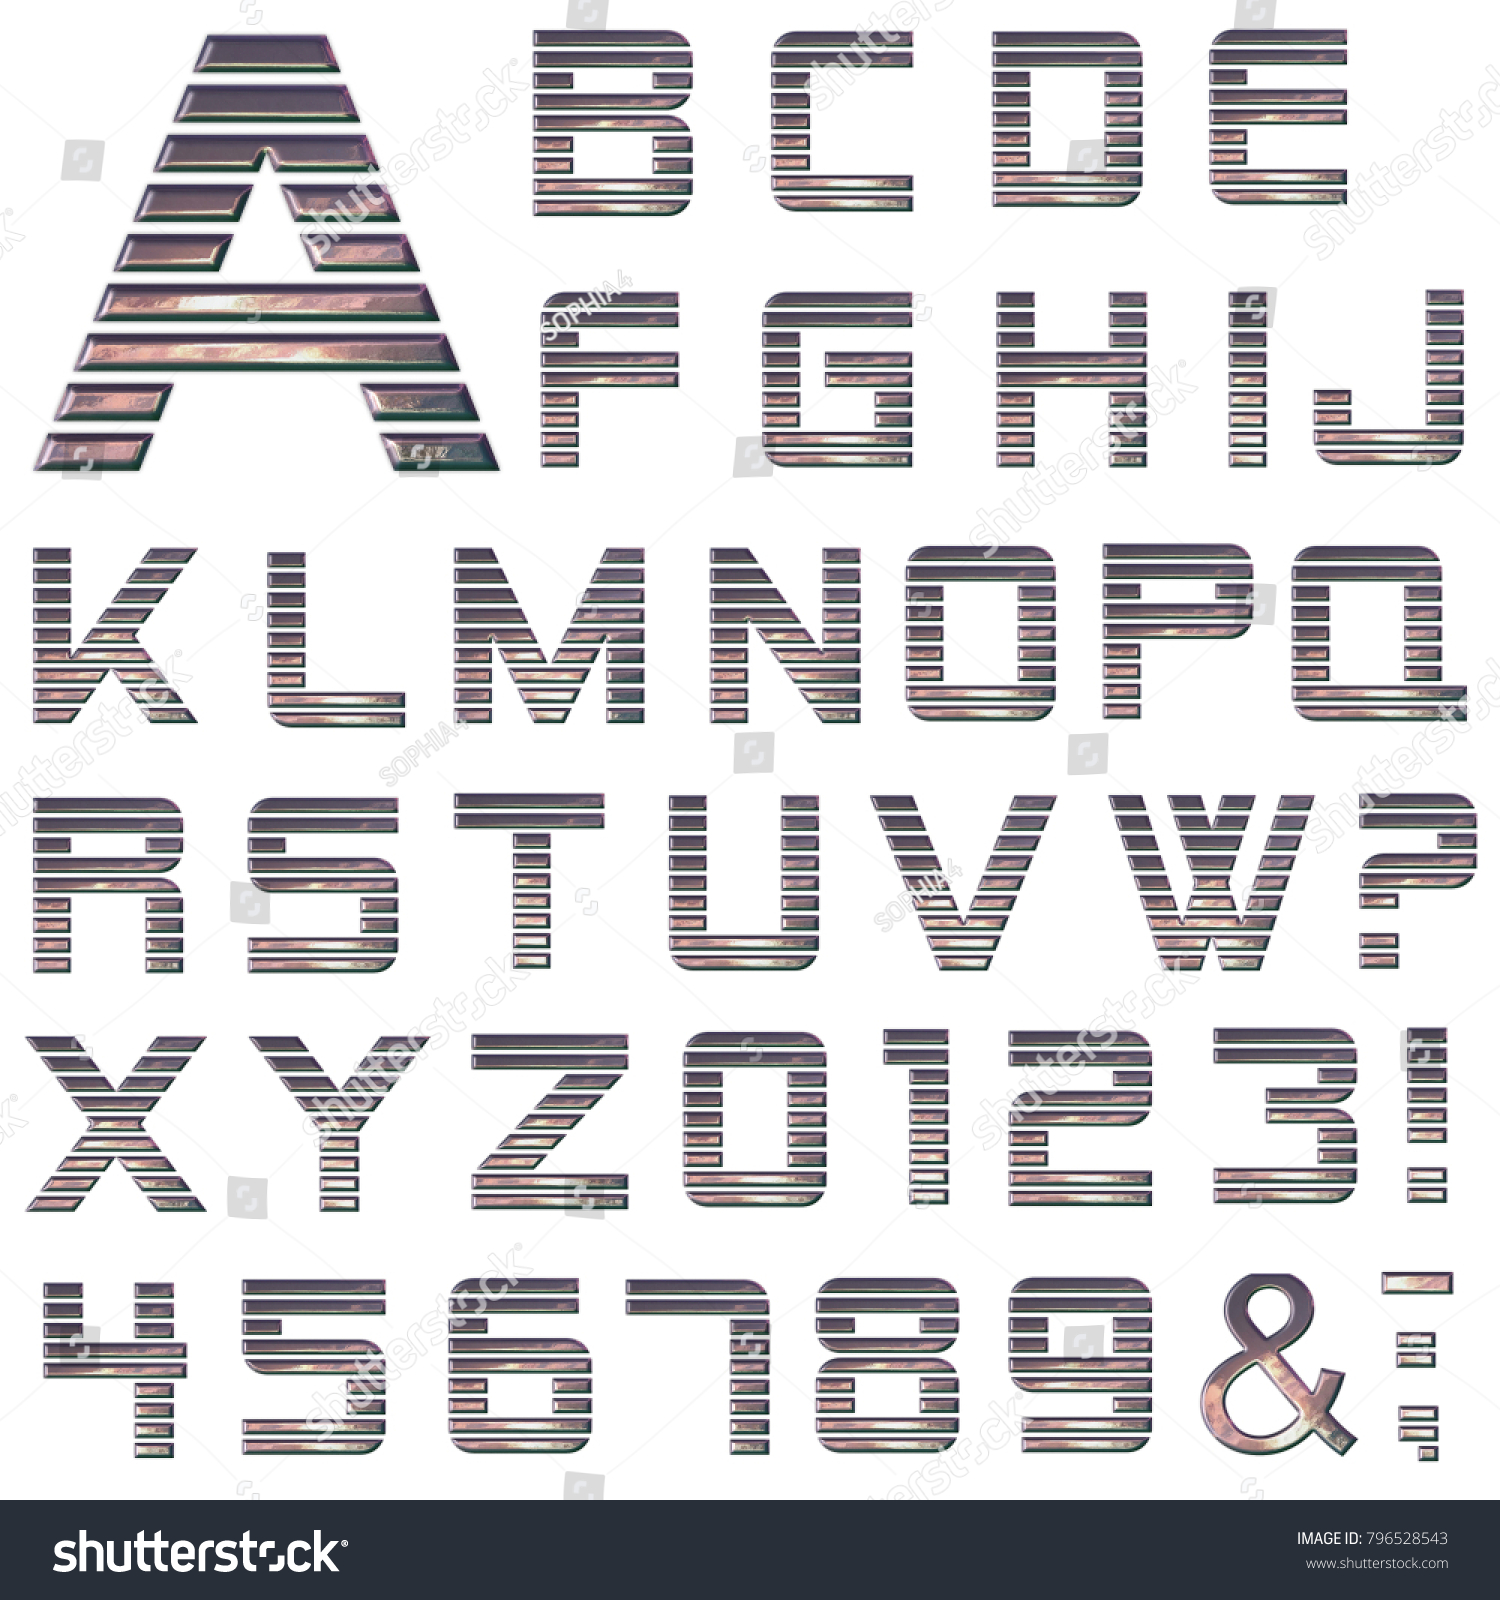 Purple metallic alphabet 3d style letters stock illustration purple metallic alphabet in 3d style letters numbers and symbols biocorpaavc